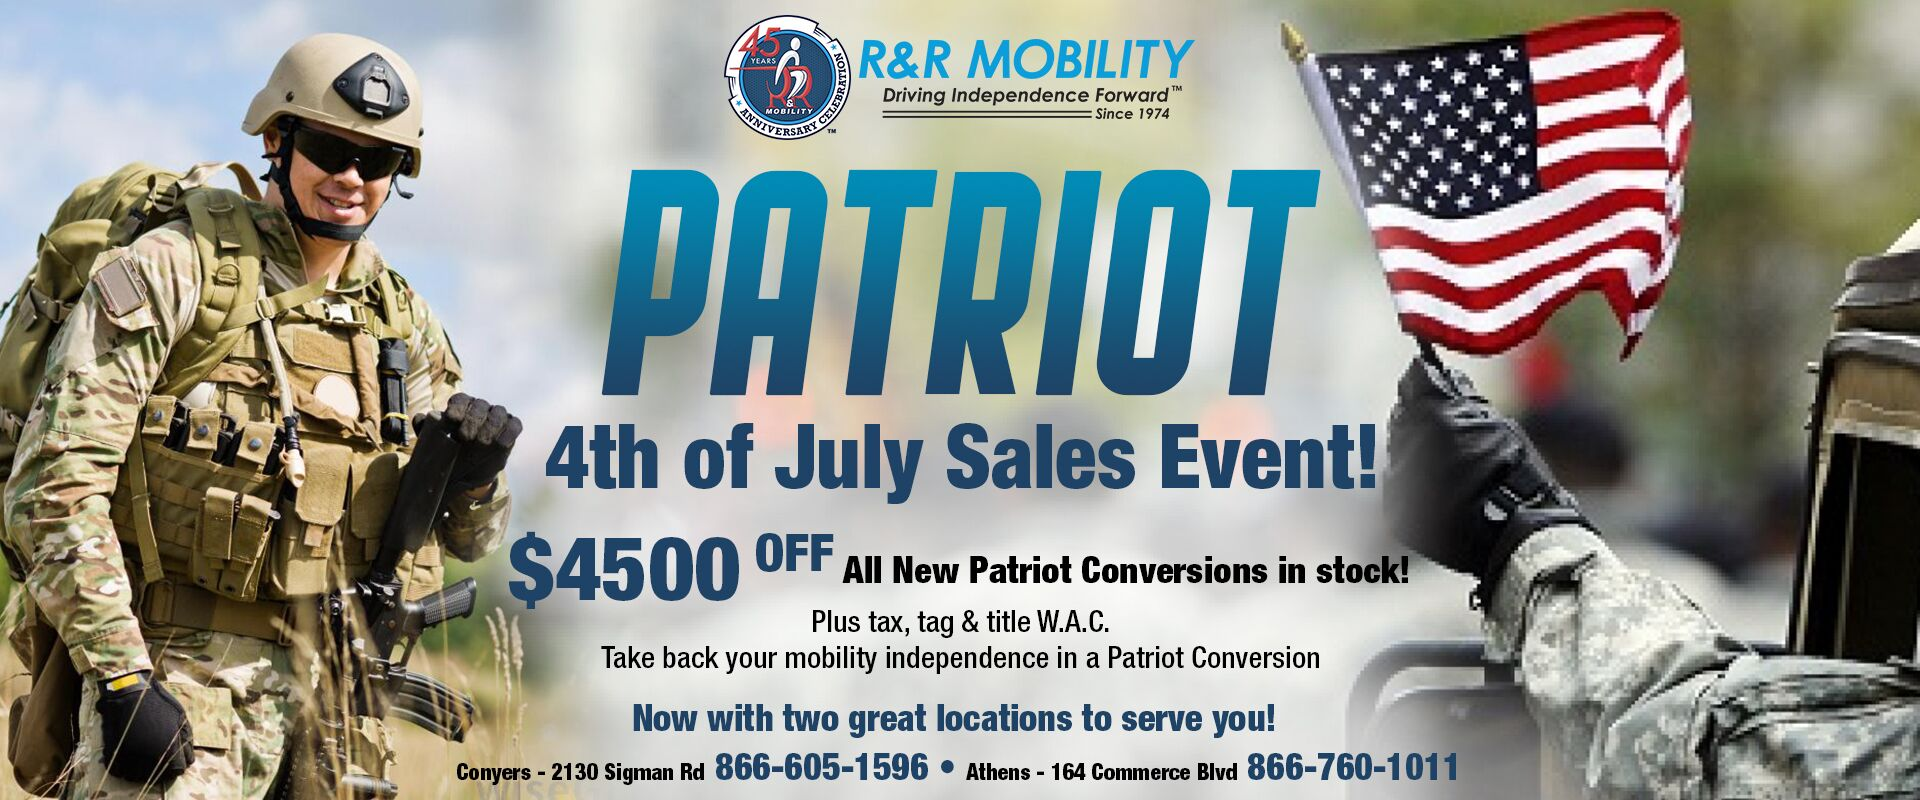 Patriot Sales Event